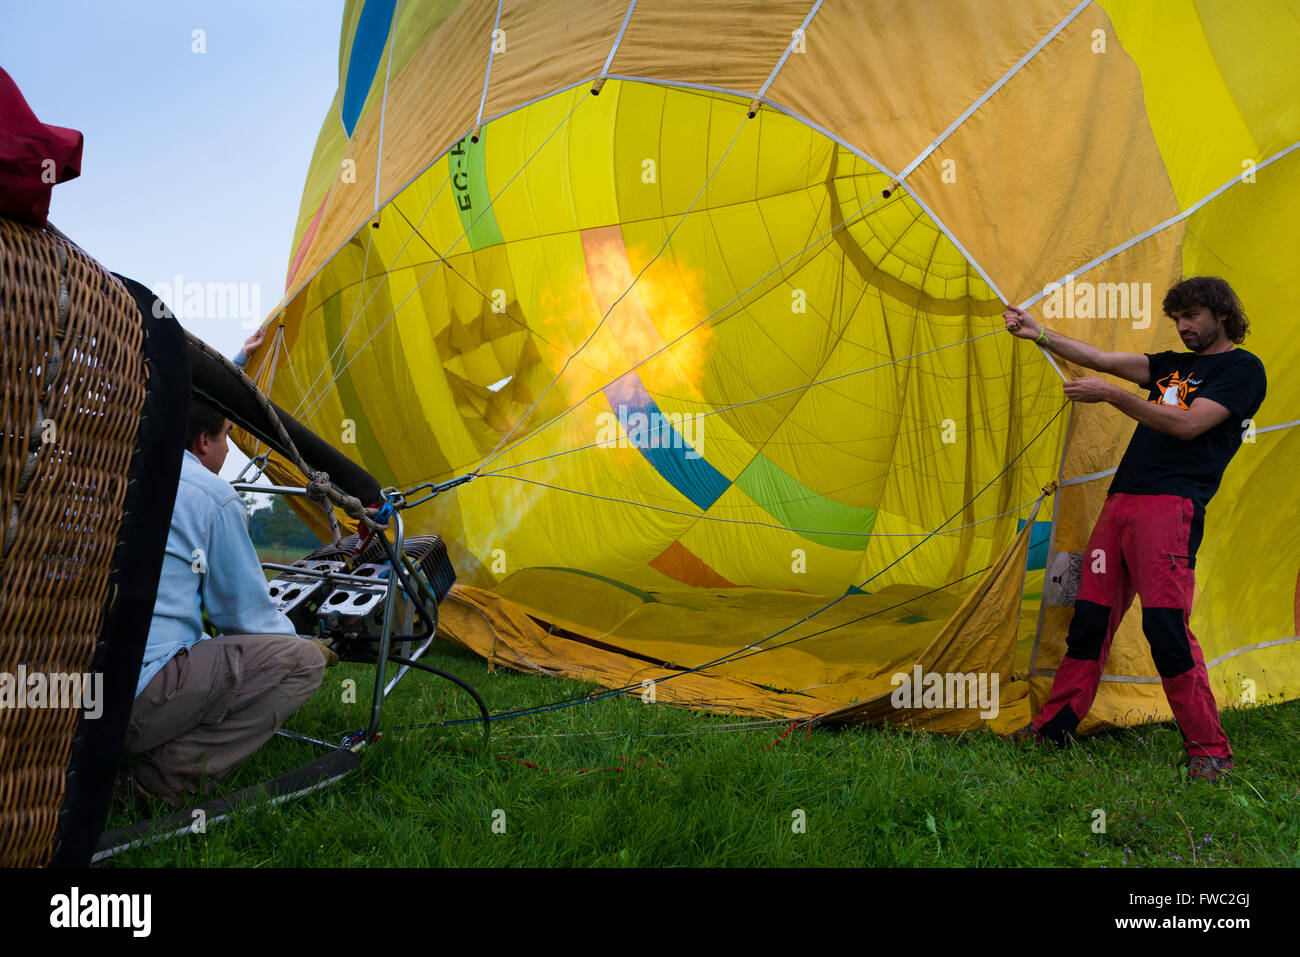 Heating up aerostat (baloon) with hot air, Spain - Stock Image